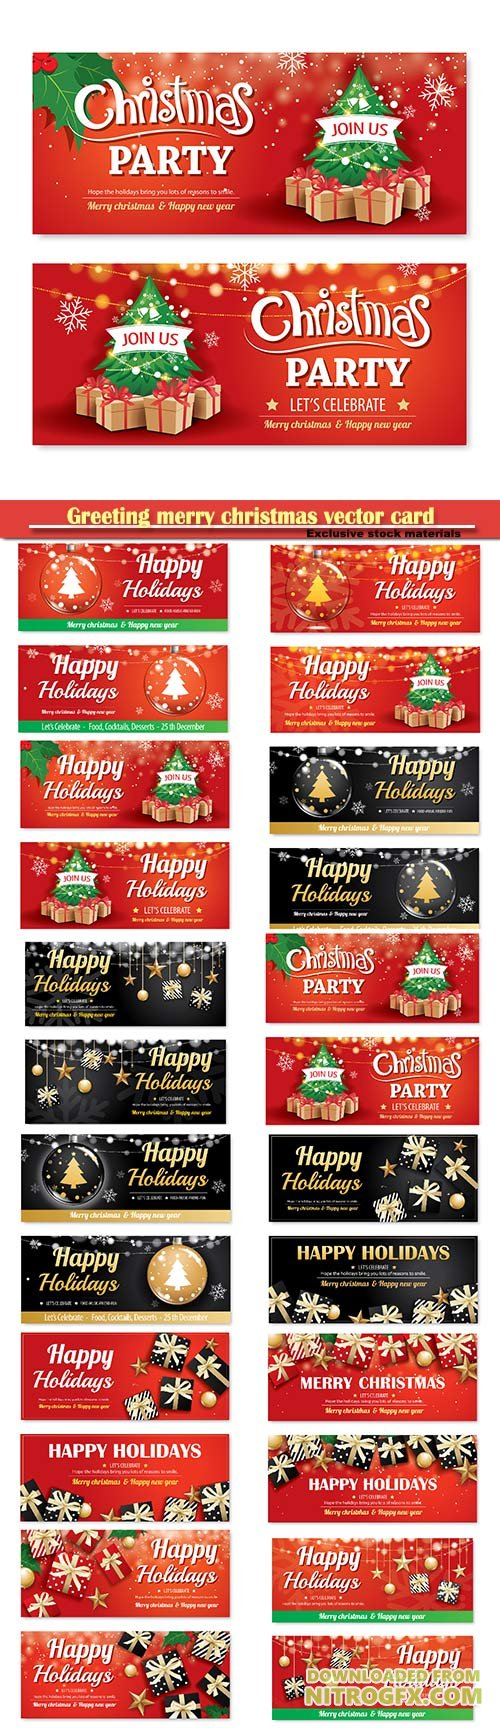 Greeting merry christmas vector card, party poster banner design template, happy holiday and new year